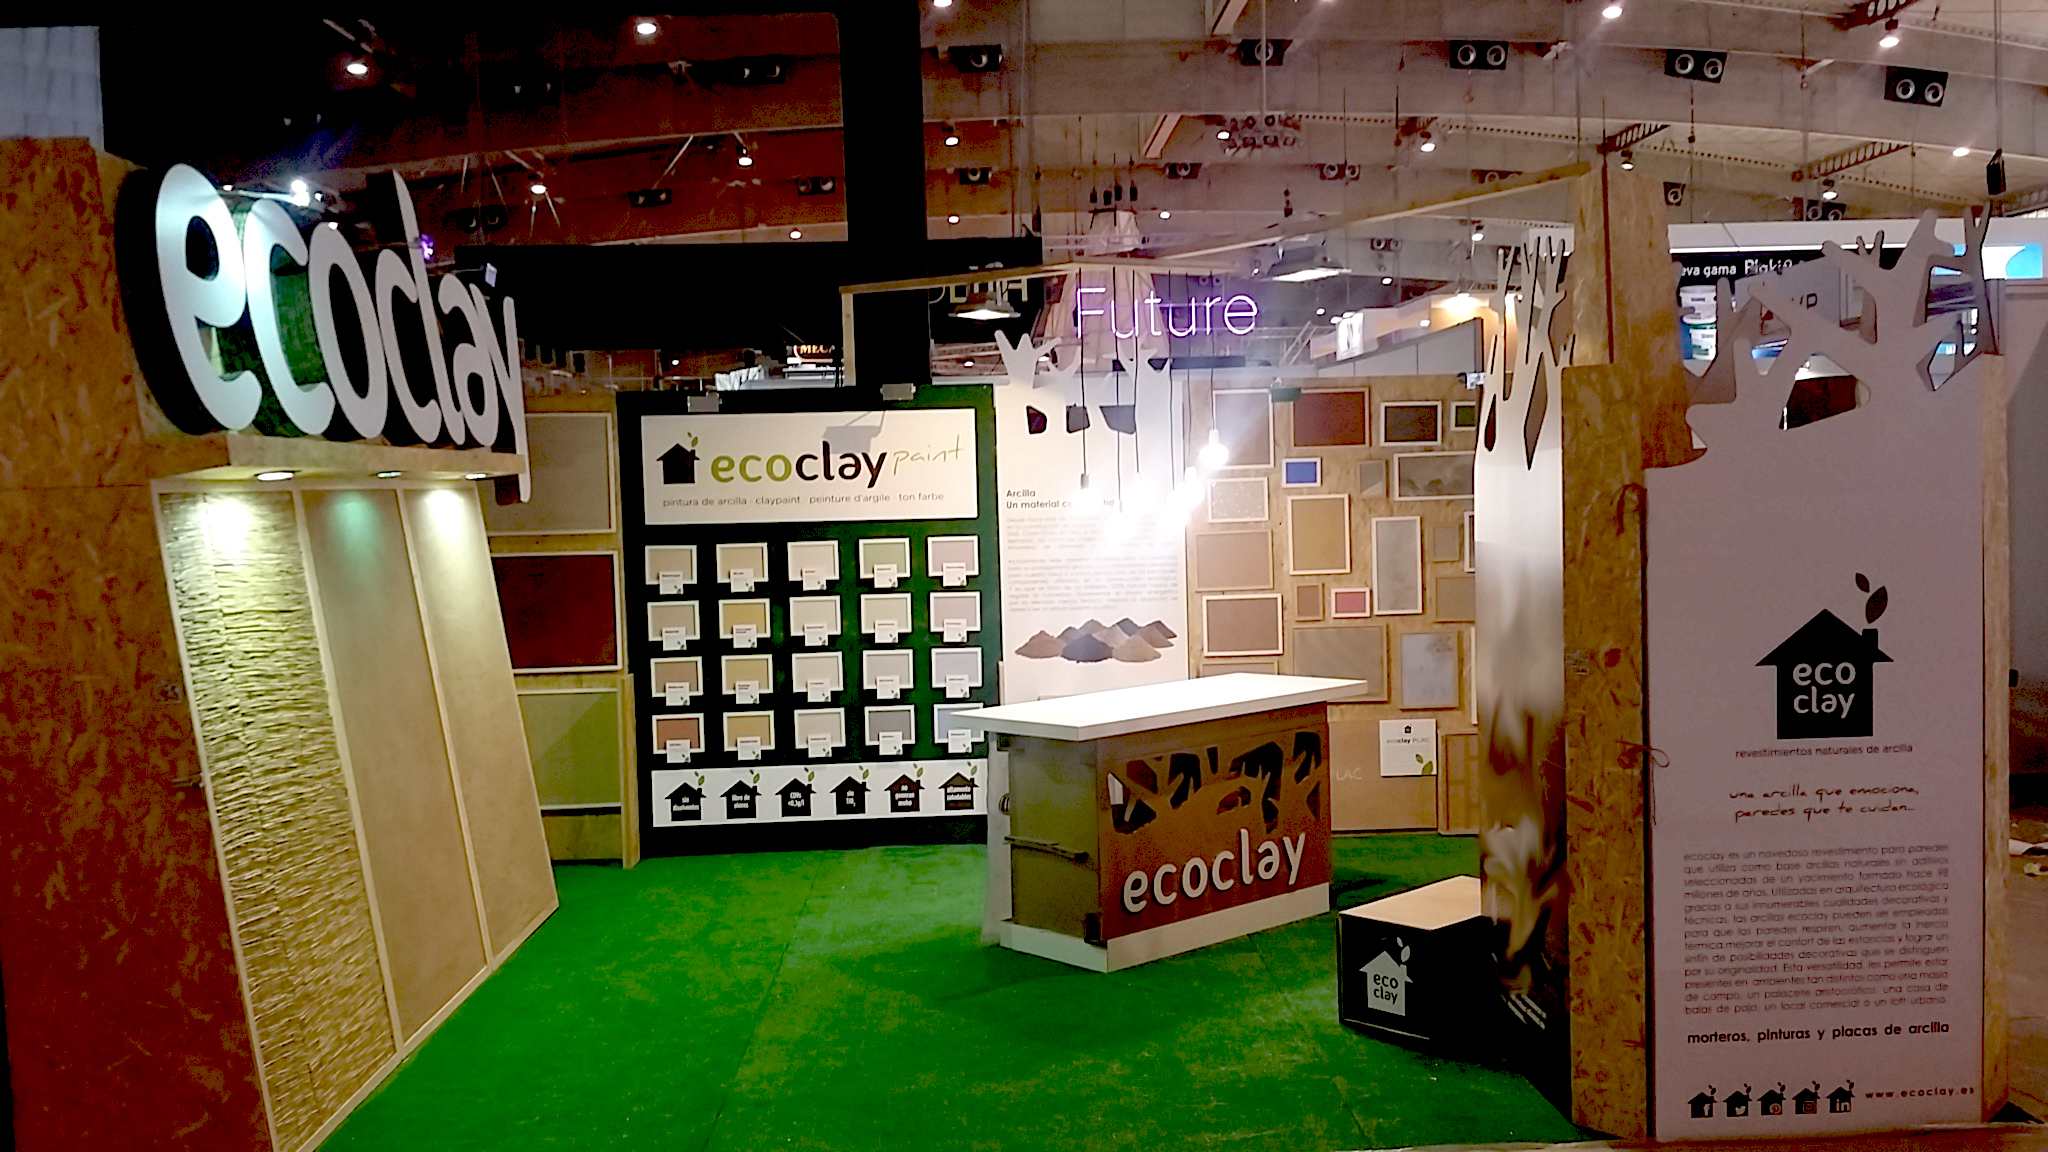 FOTO STAND ECOCLAY